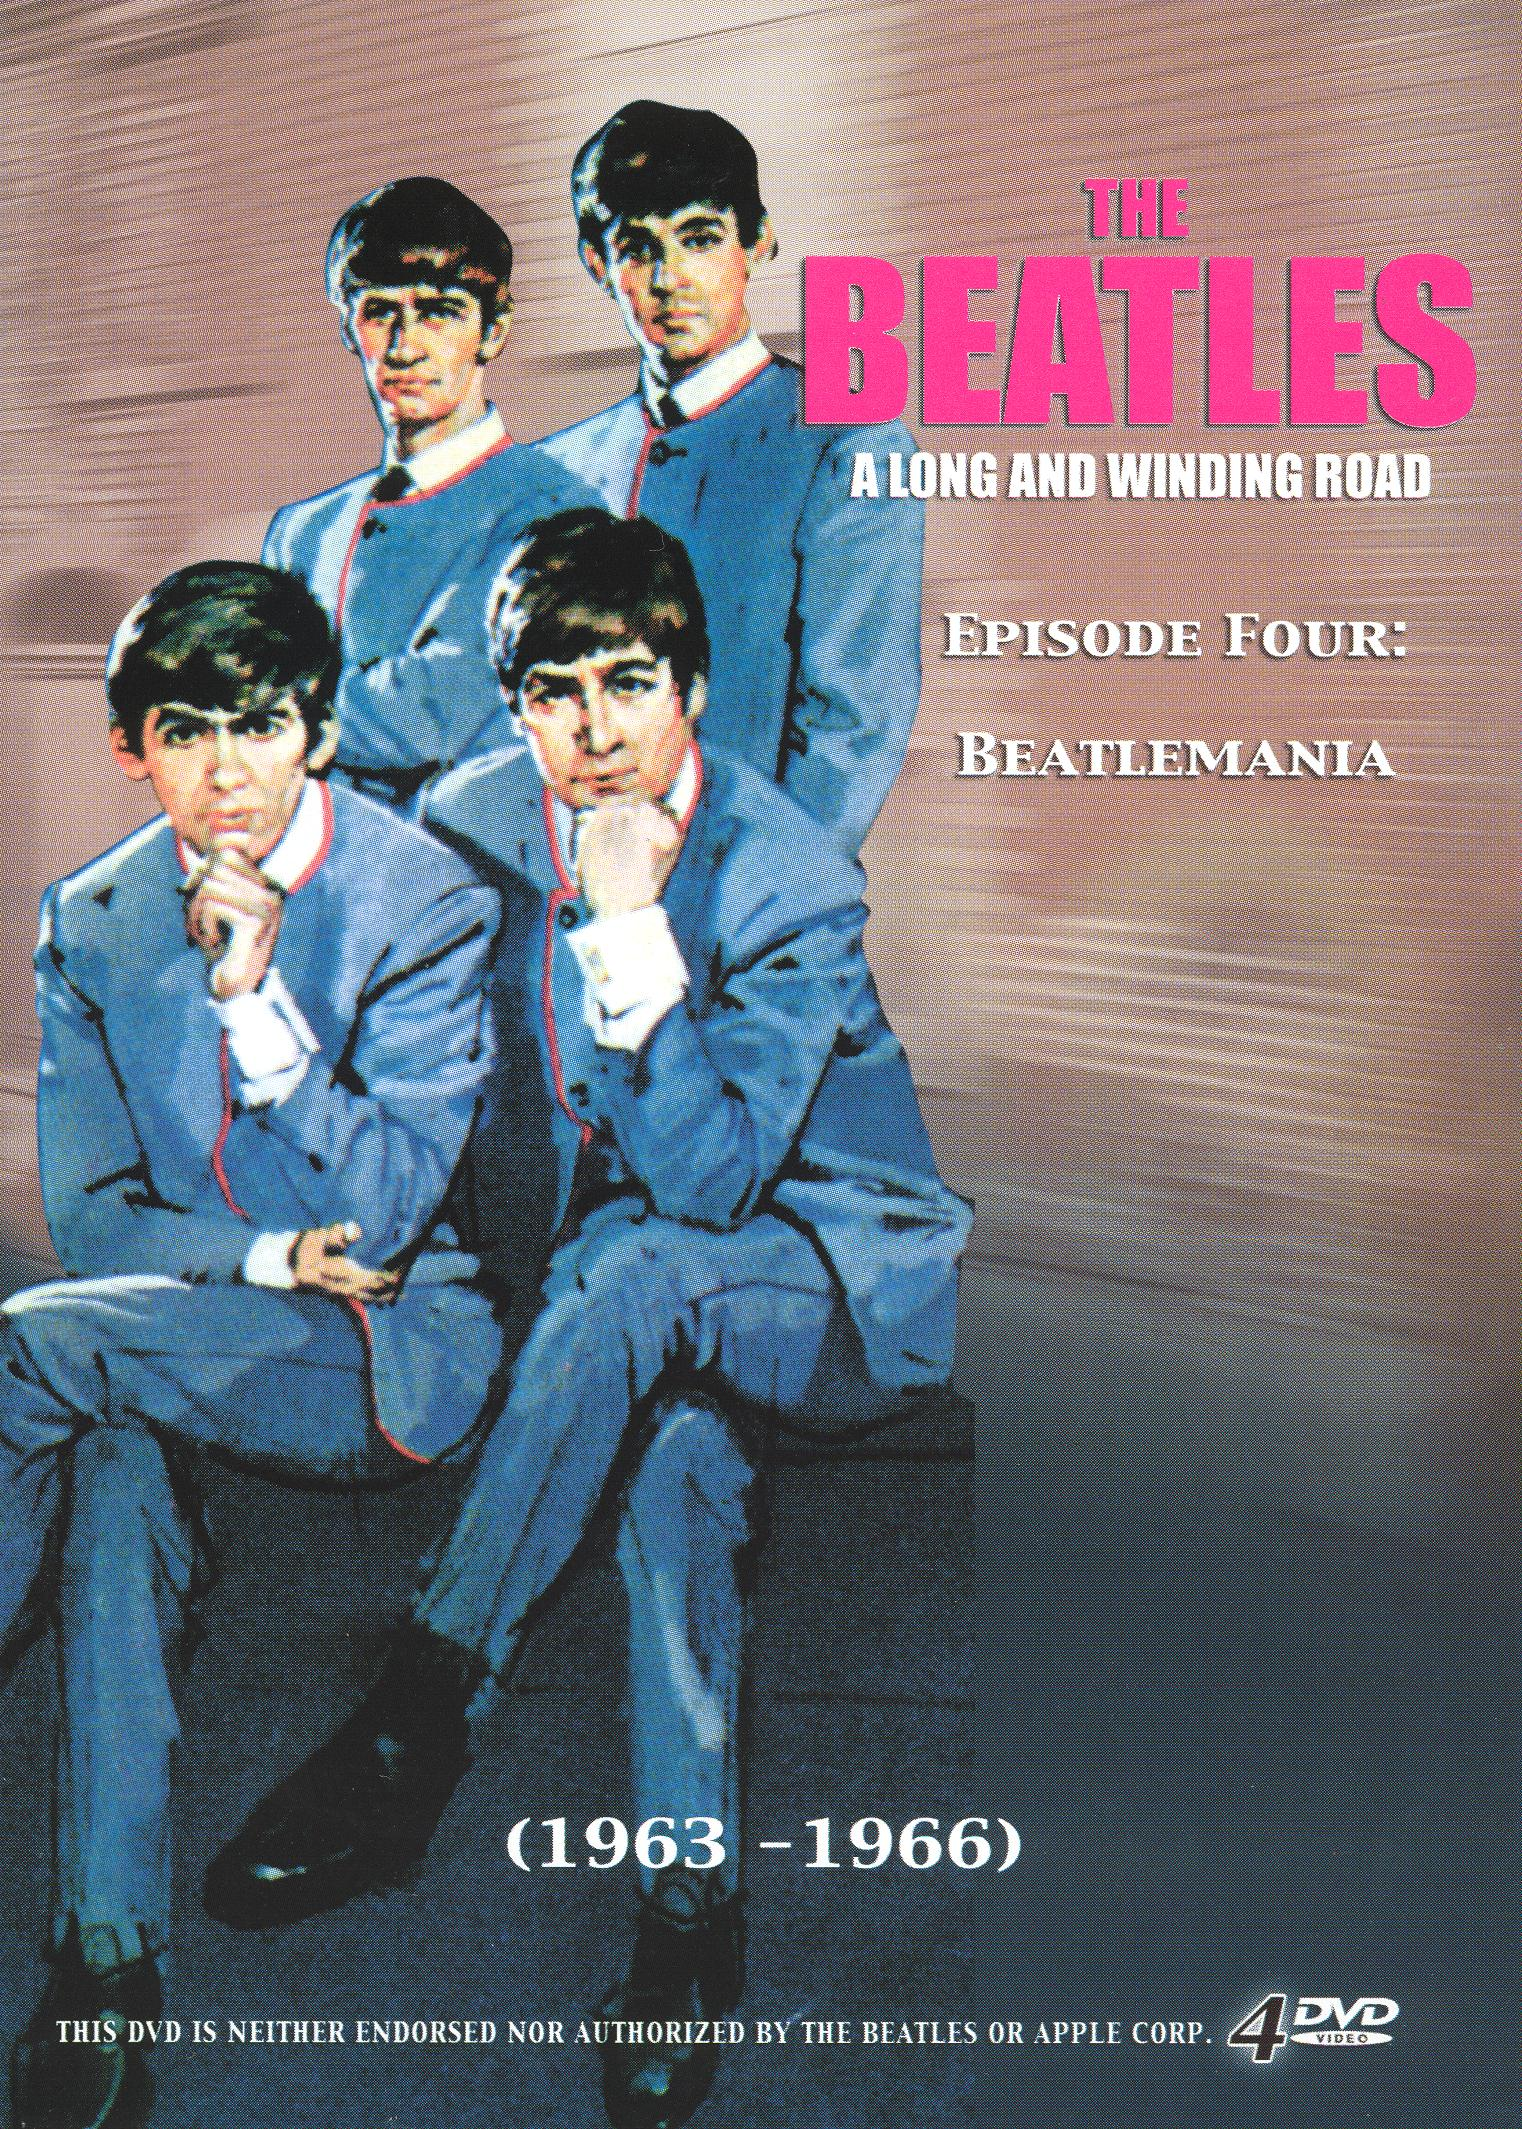 The Beatles: A Long and Winding Road, Episode 4: Beatlemania (1963-1966)